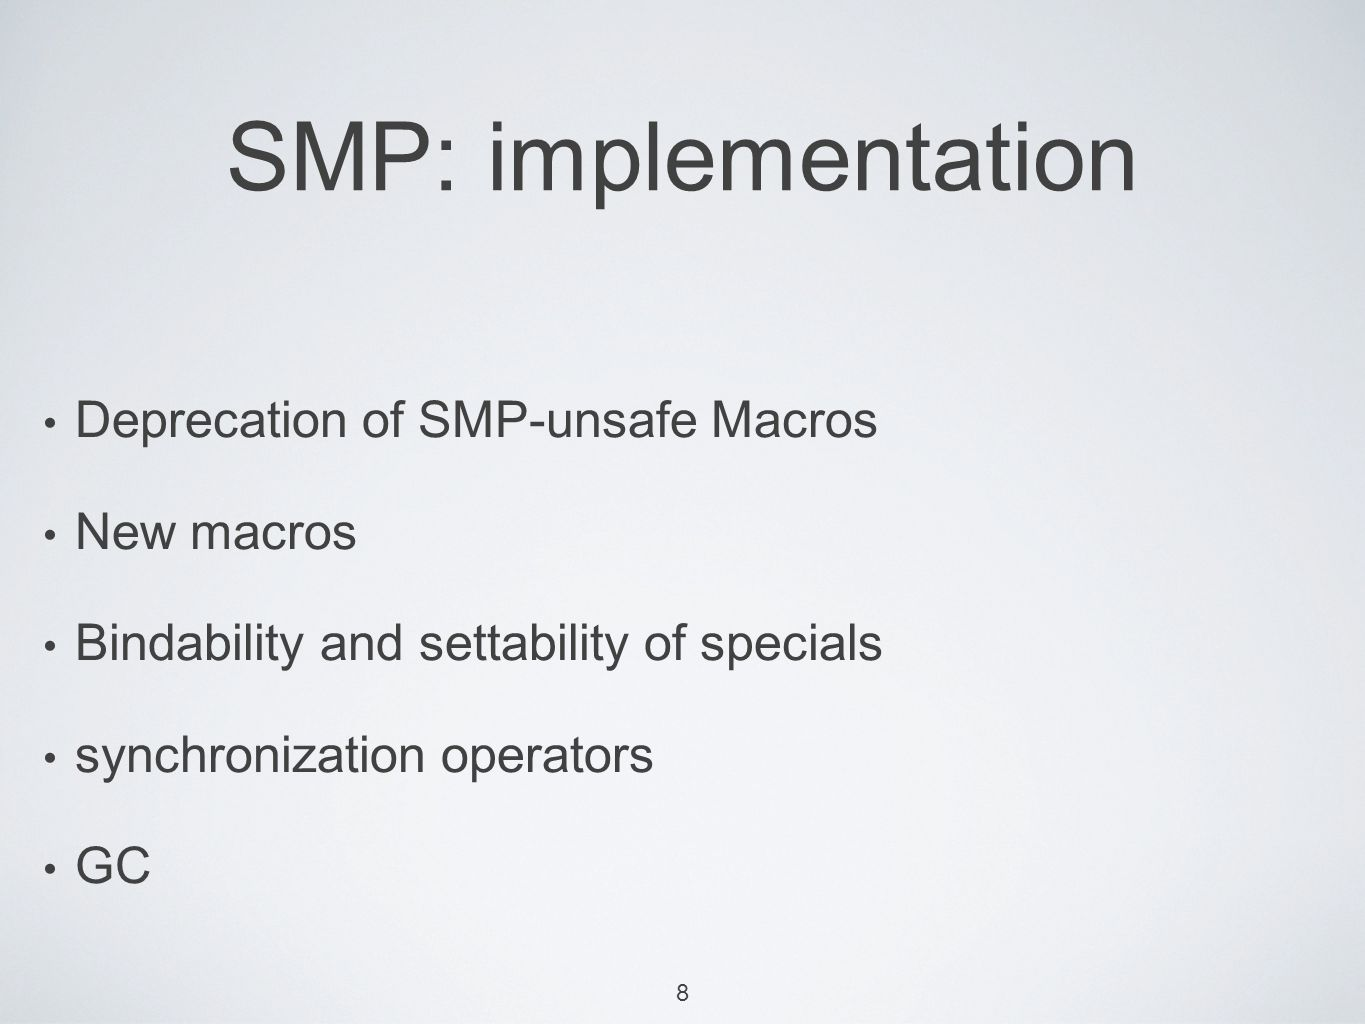 9 SMP: implementation S Deprecated smp-unsafe macros without-interrupts, without-scheduling excl::fast / excl::atomically excl::*warn-smp-usage*